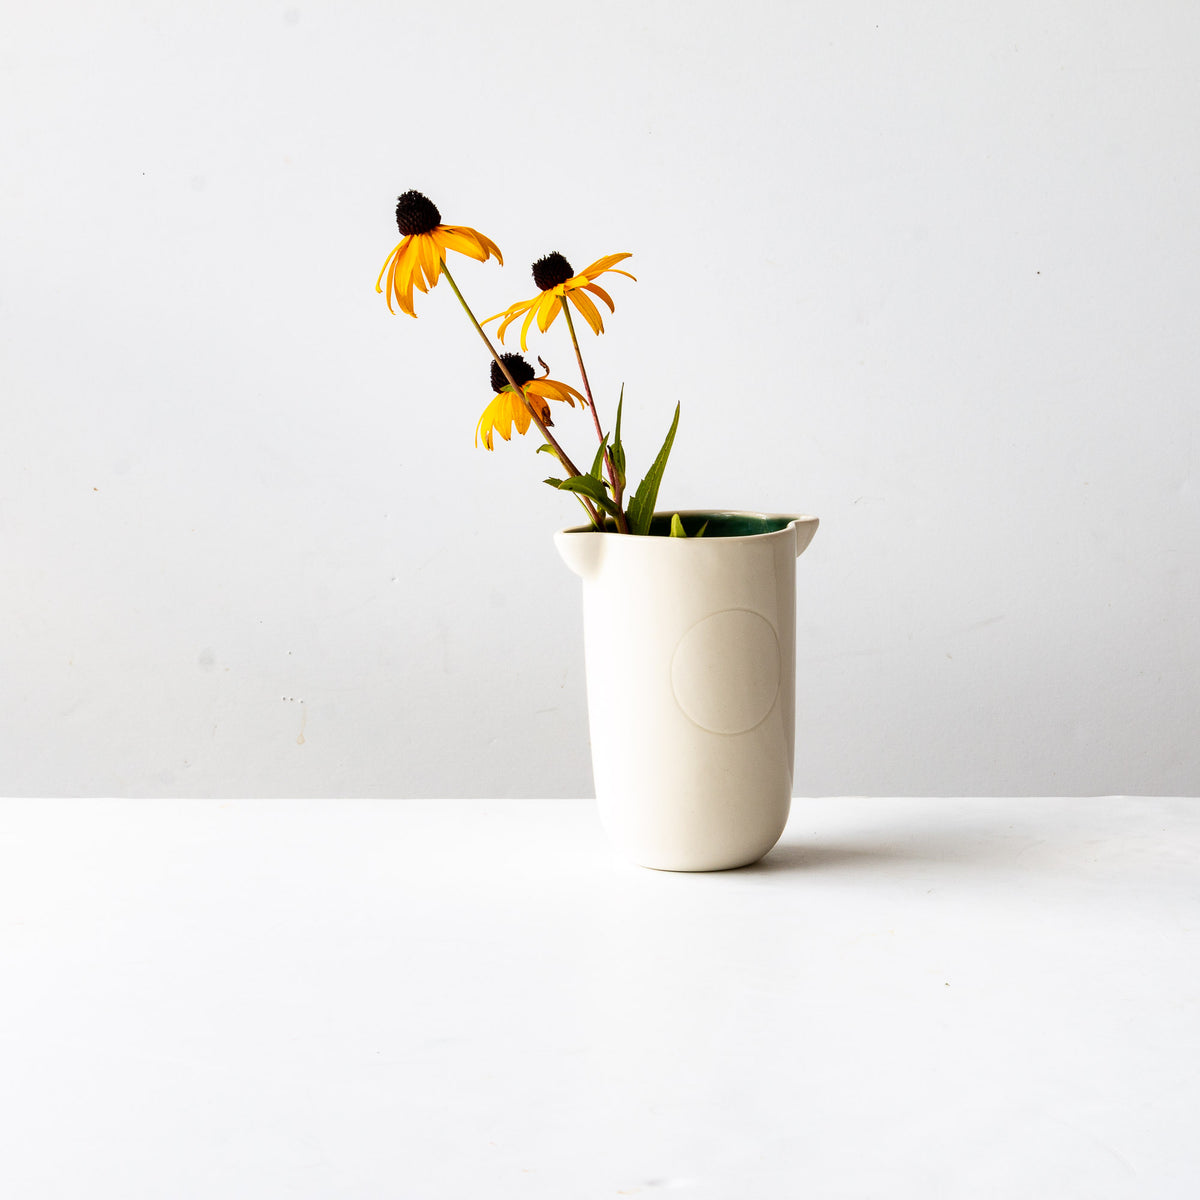 Handmade Tumbler / Small Porcelain Vase (With Flower)  - Sold by Chic & Basta